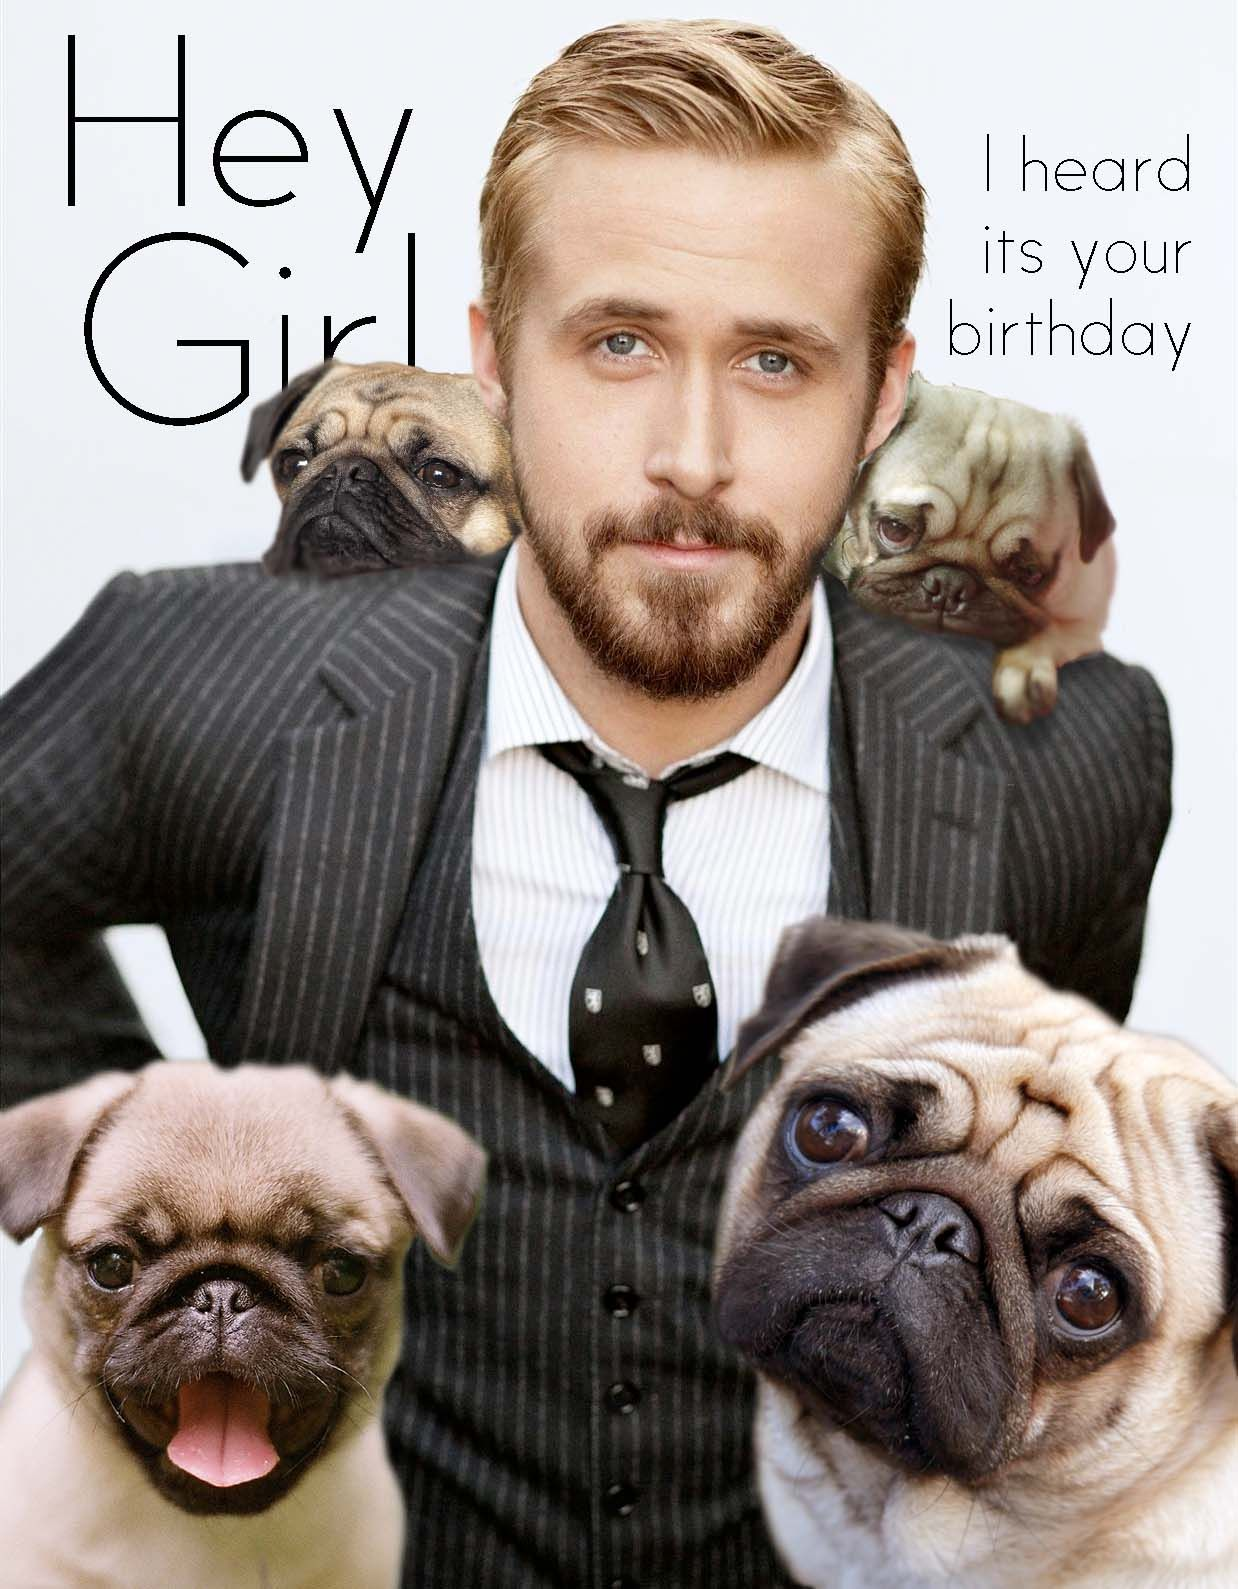 Hey girl, me and these pugs just wanted to wish you a